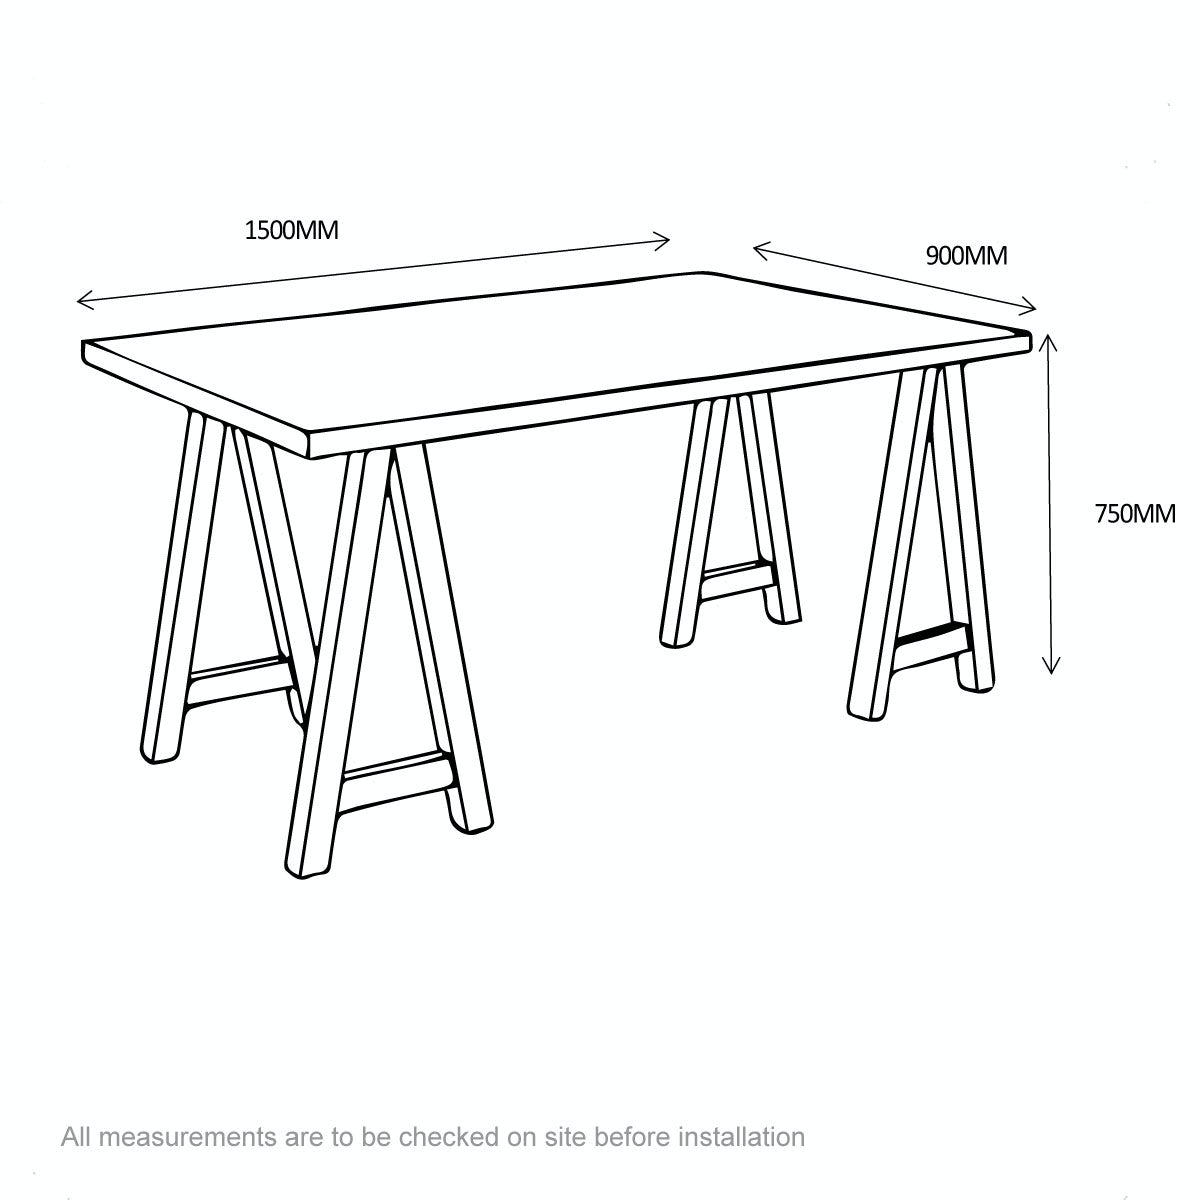 Dimensions for Hudson walnut trestle table